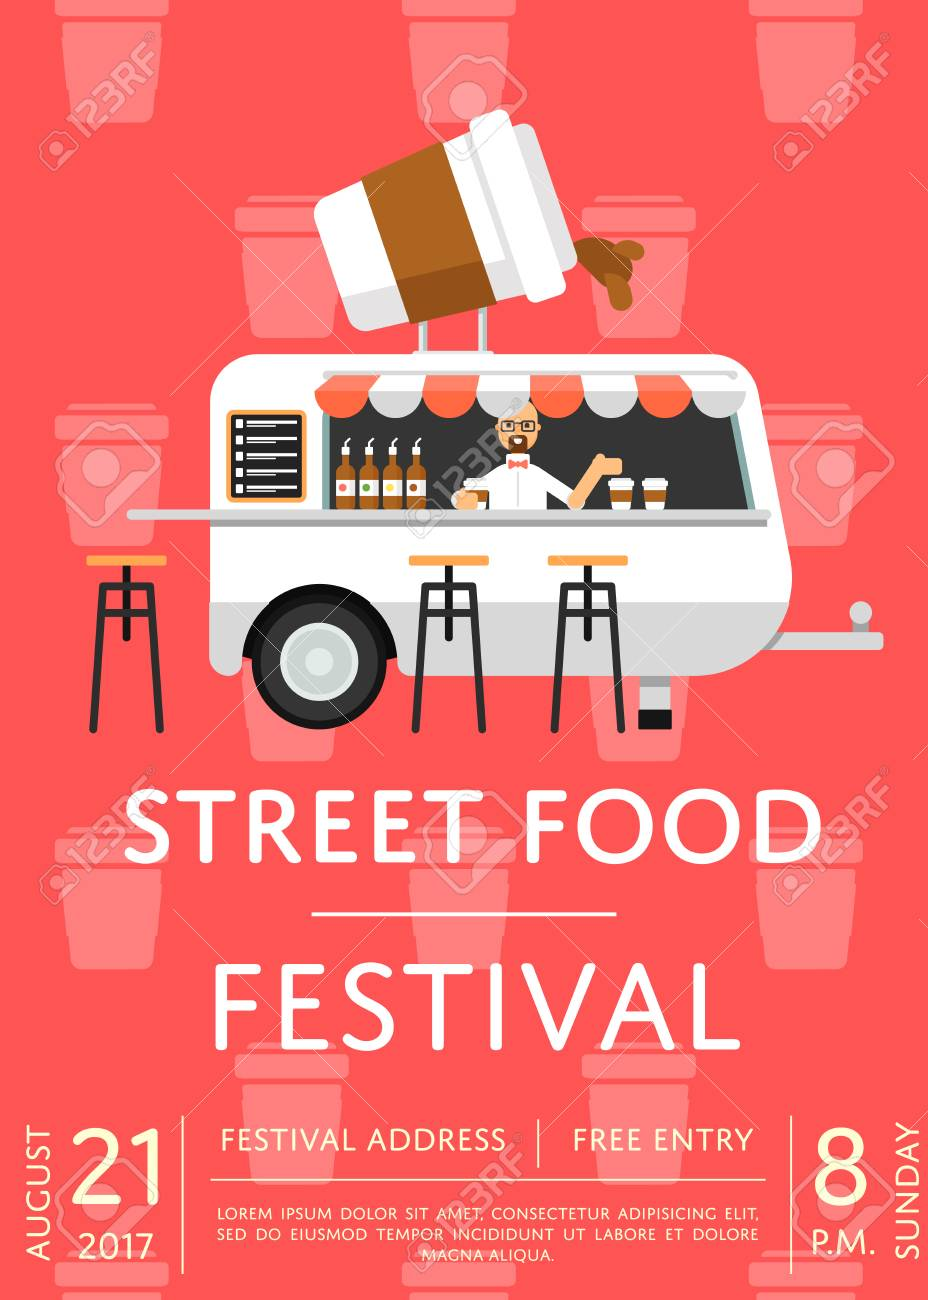 Food Truck Festival Invitation In Flat Style Culinary City Event - Food truck flyer template